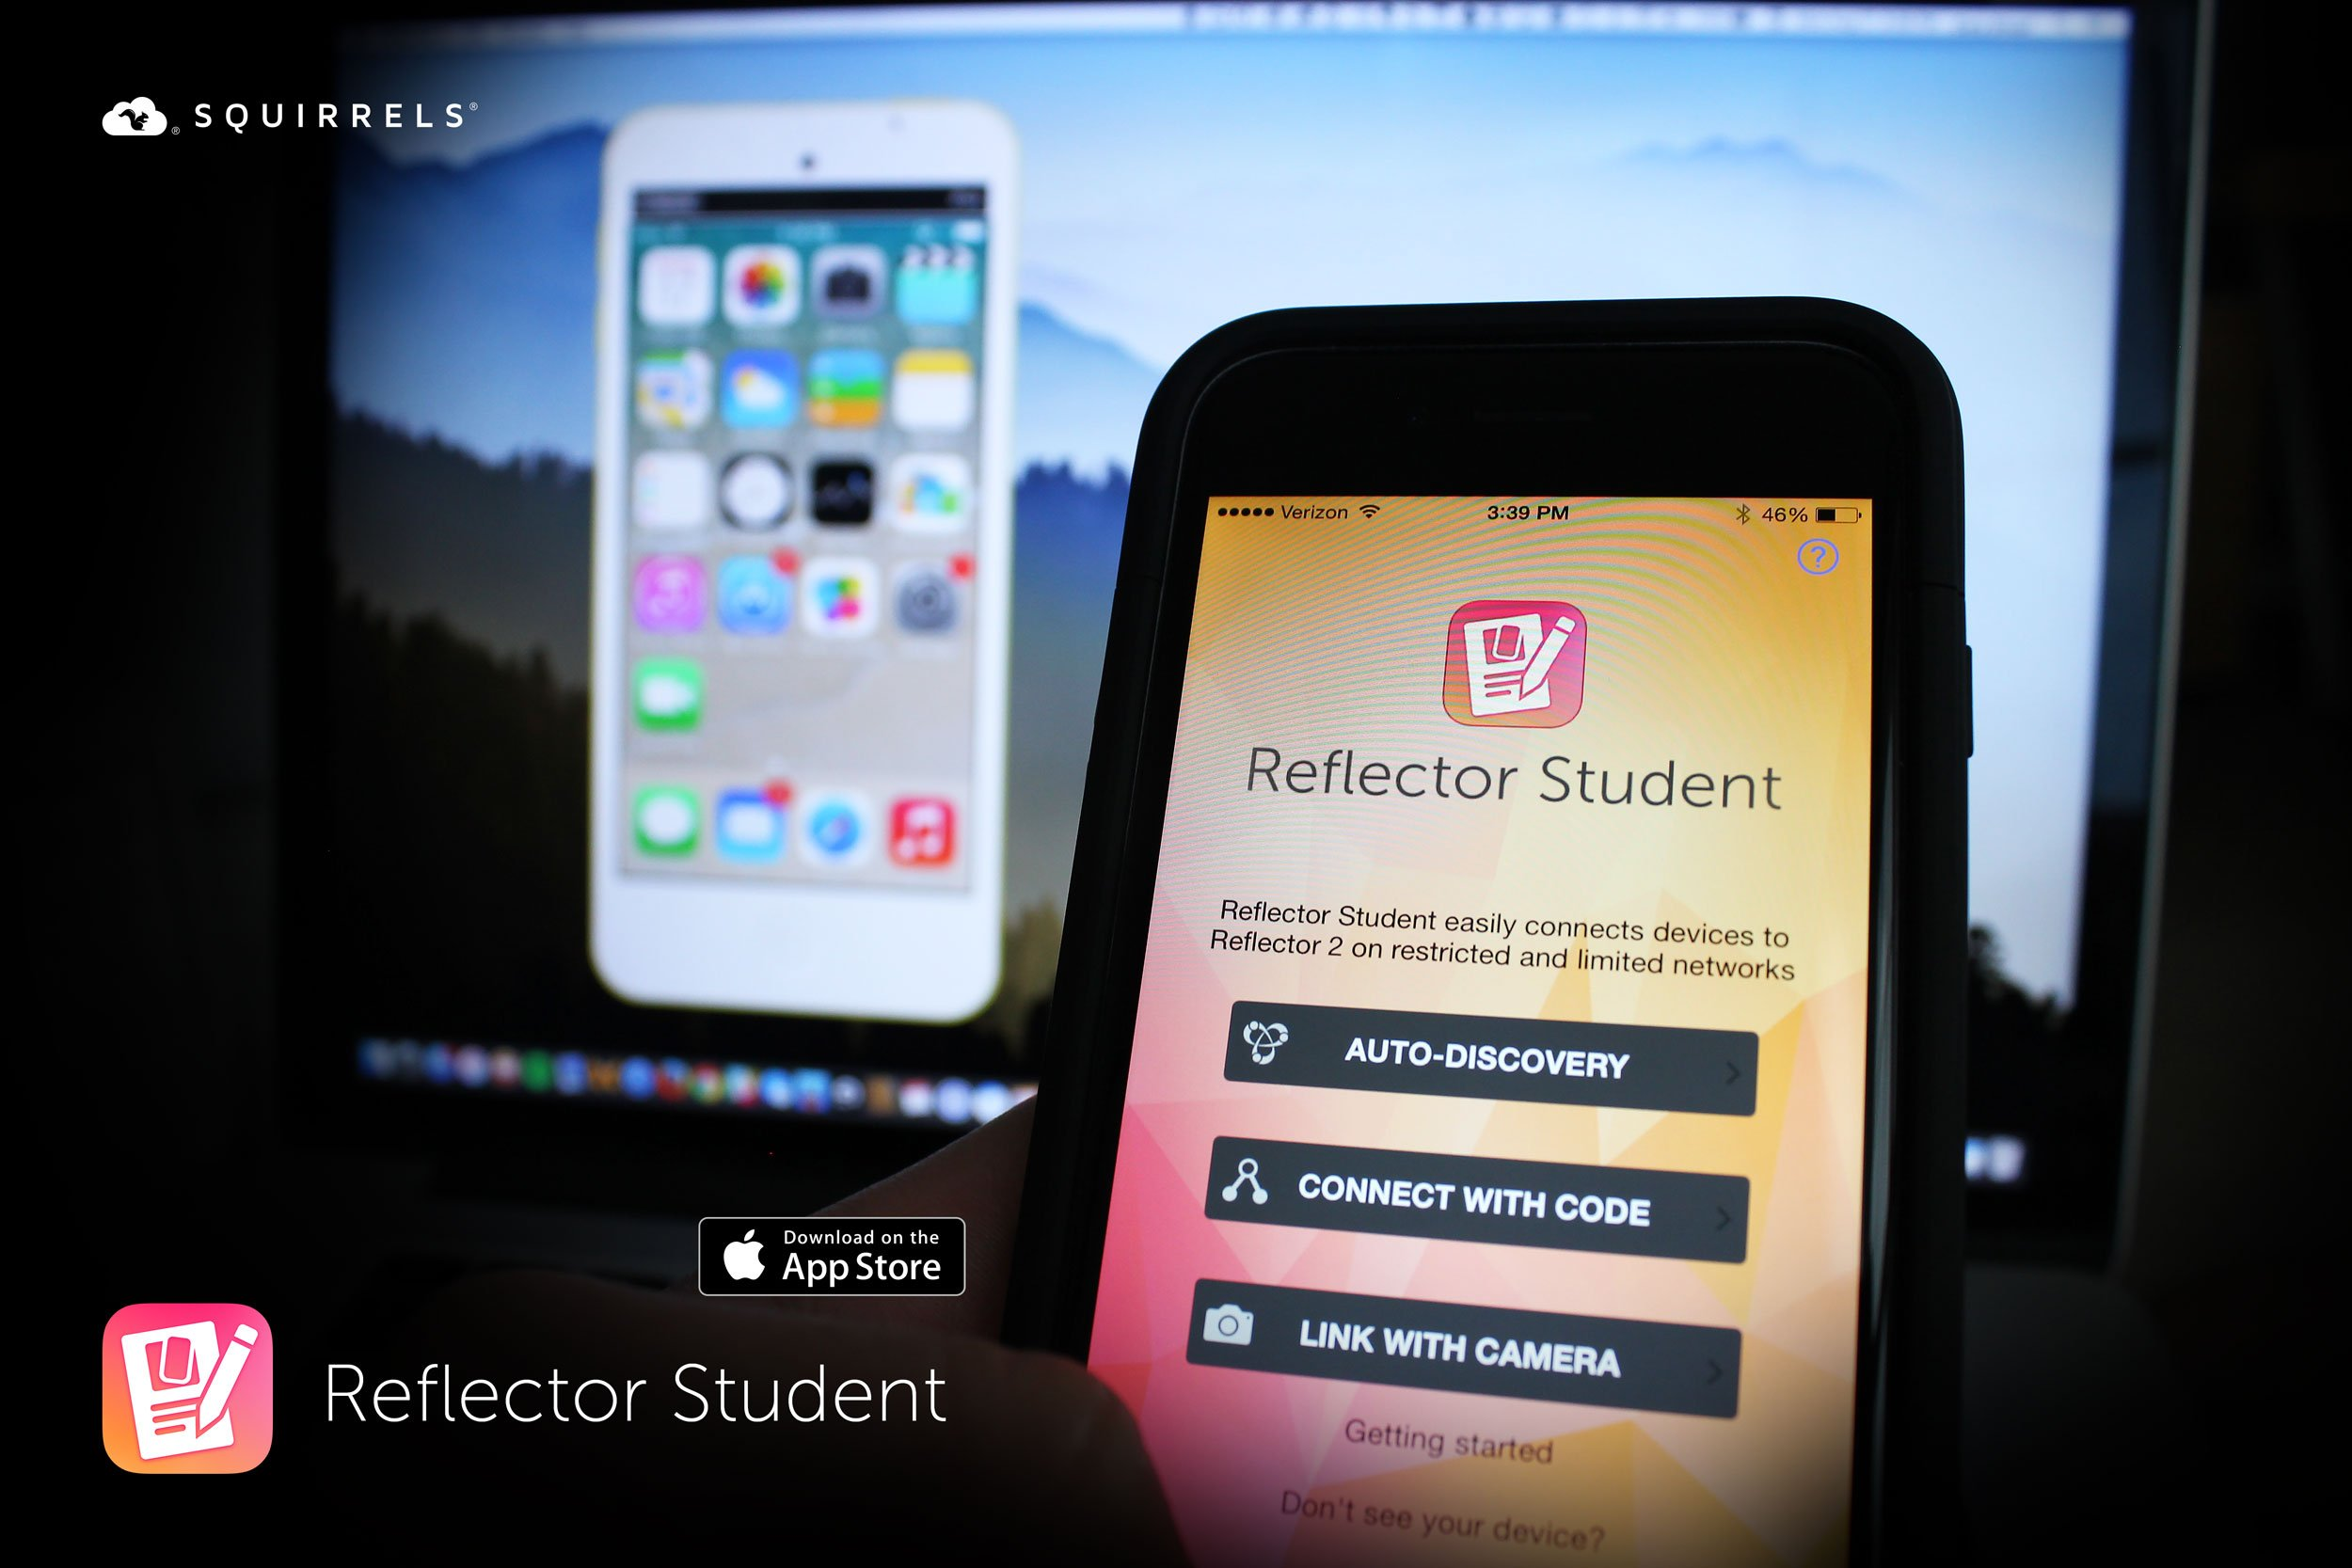 Introducing Reflector Student